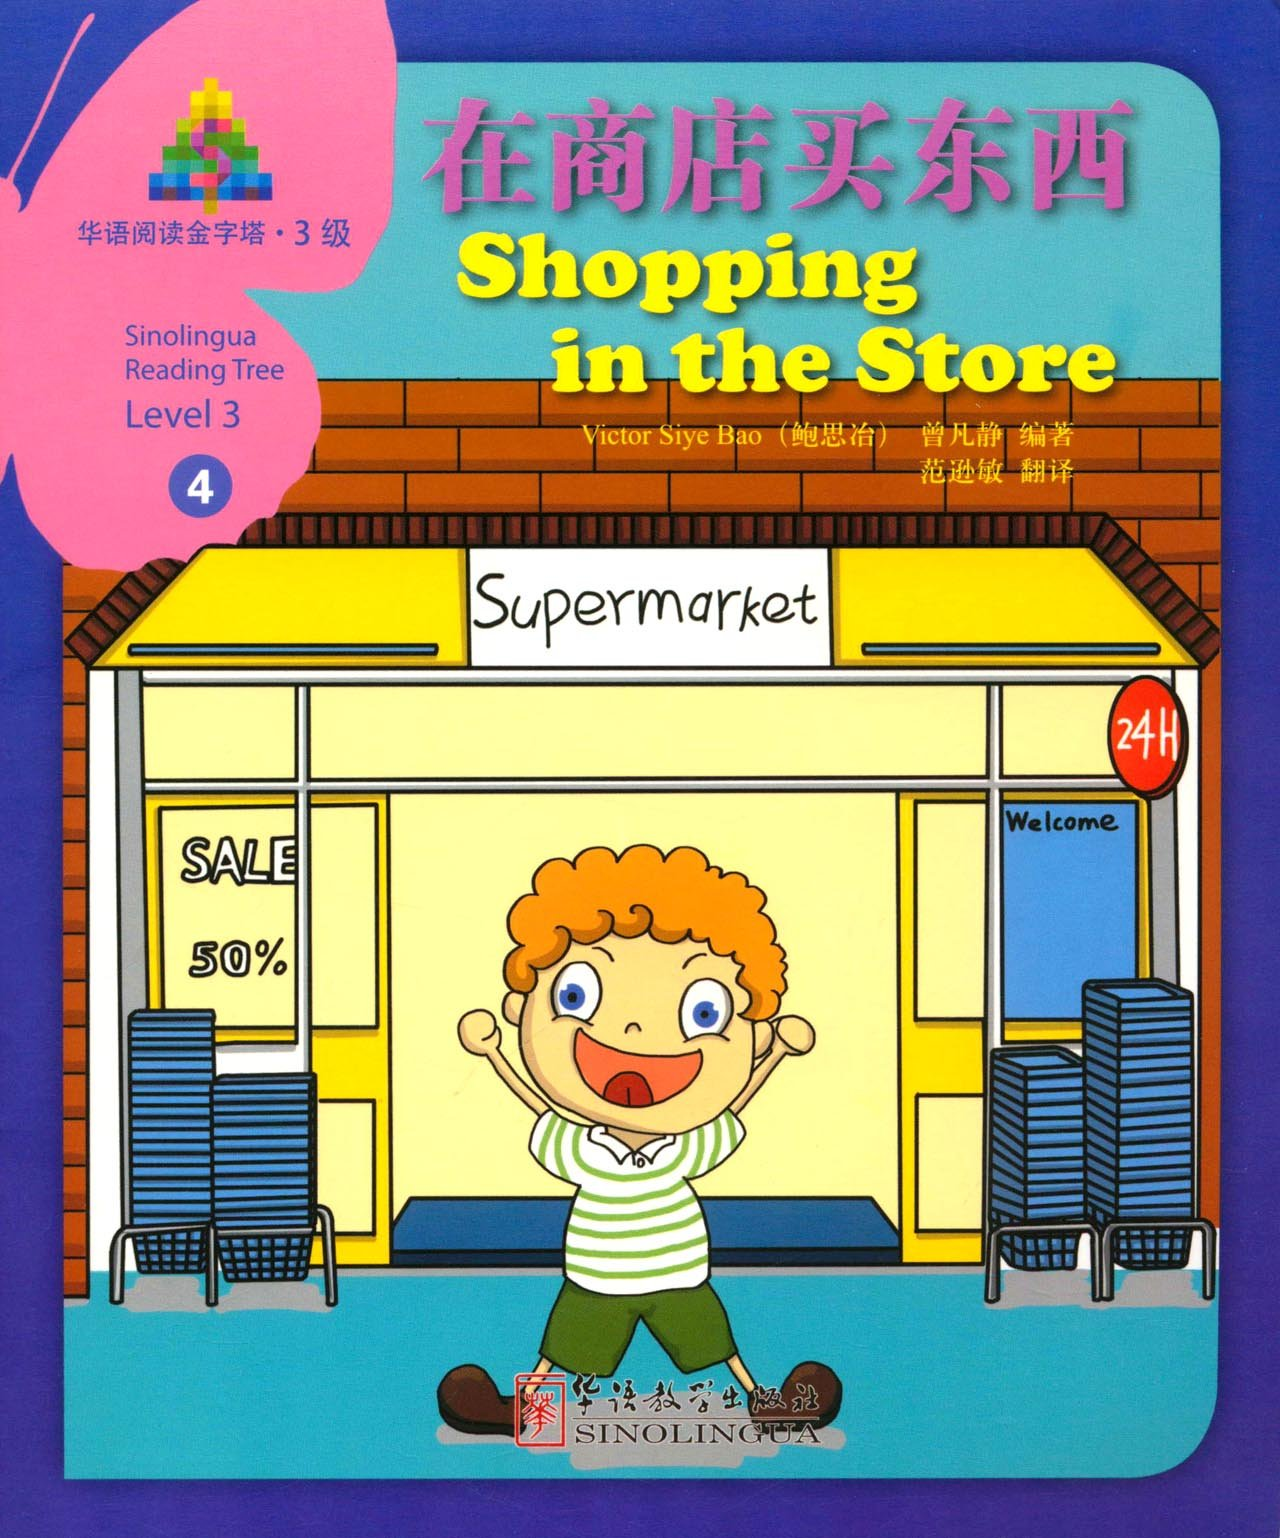 Shopping in the Store - Sinolingua Reading Tree Level 3